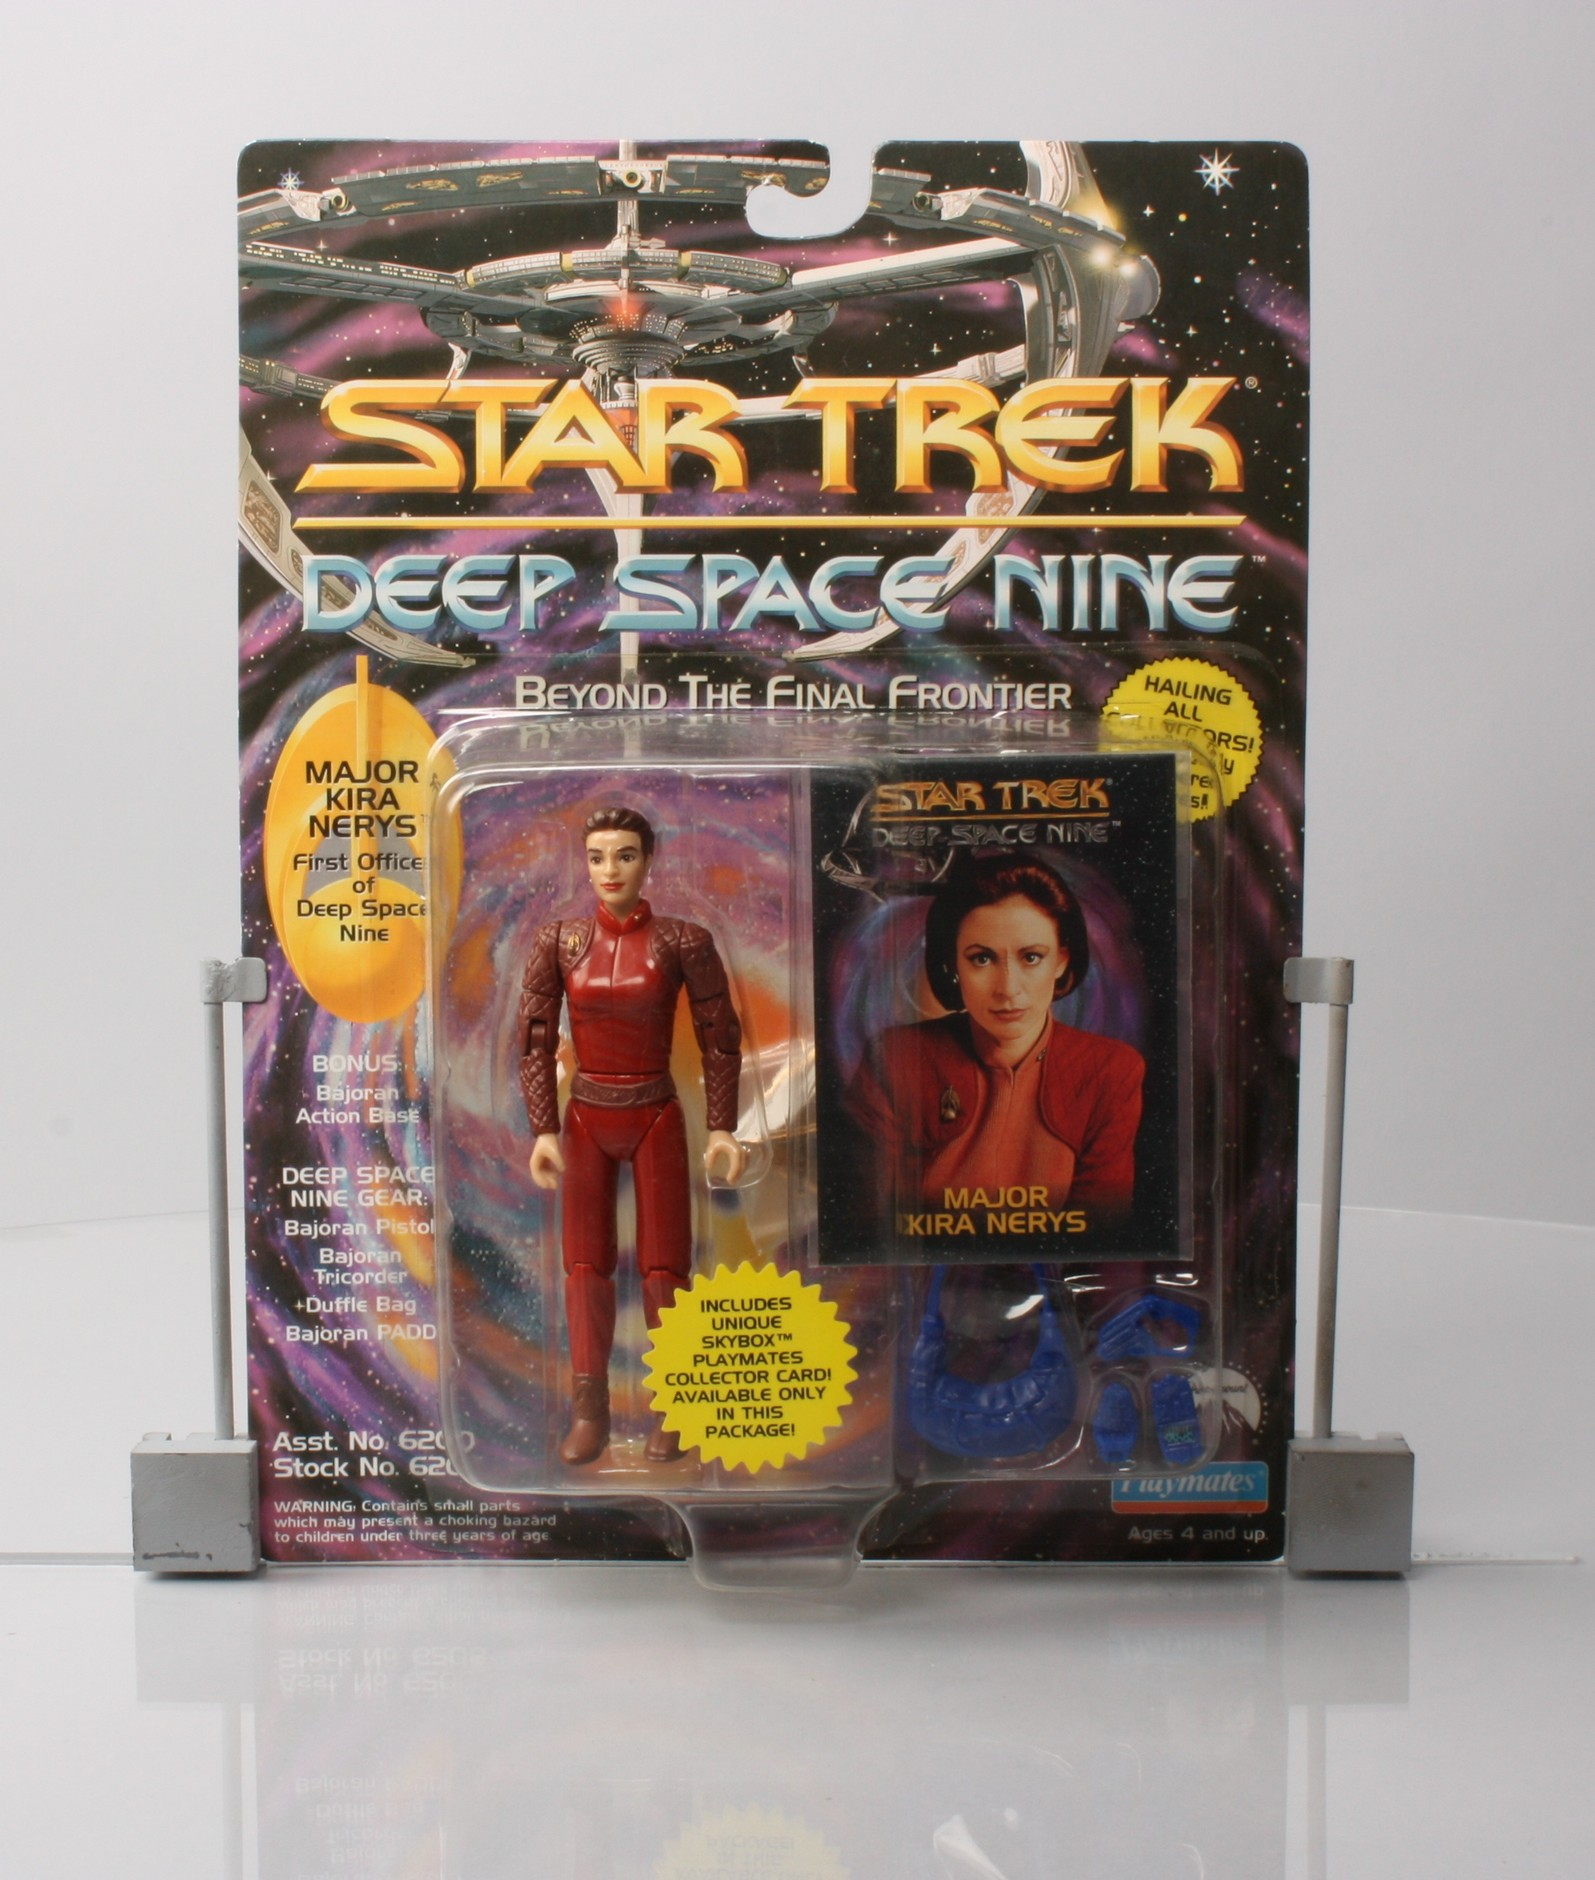 Major Kira Nerys